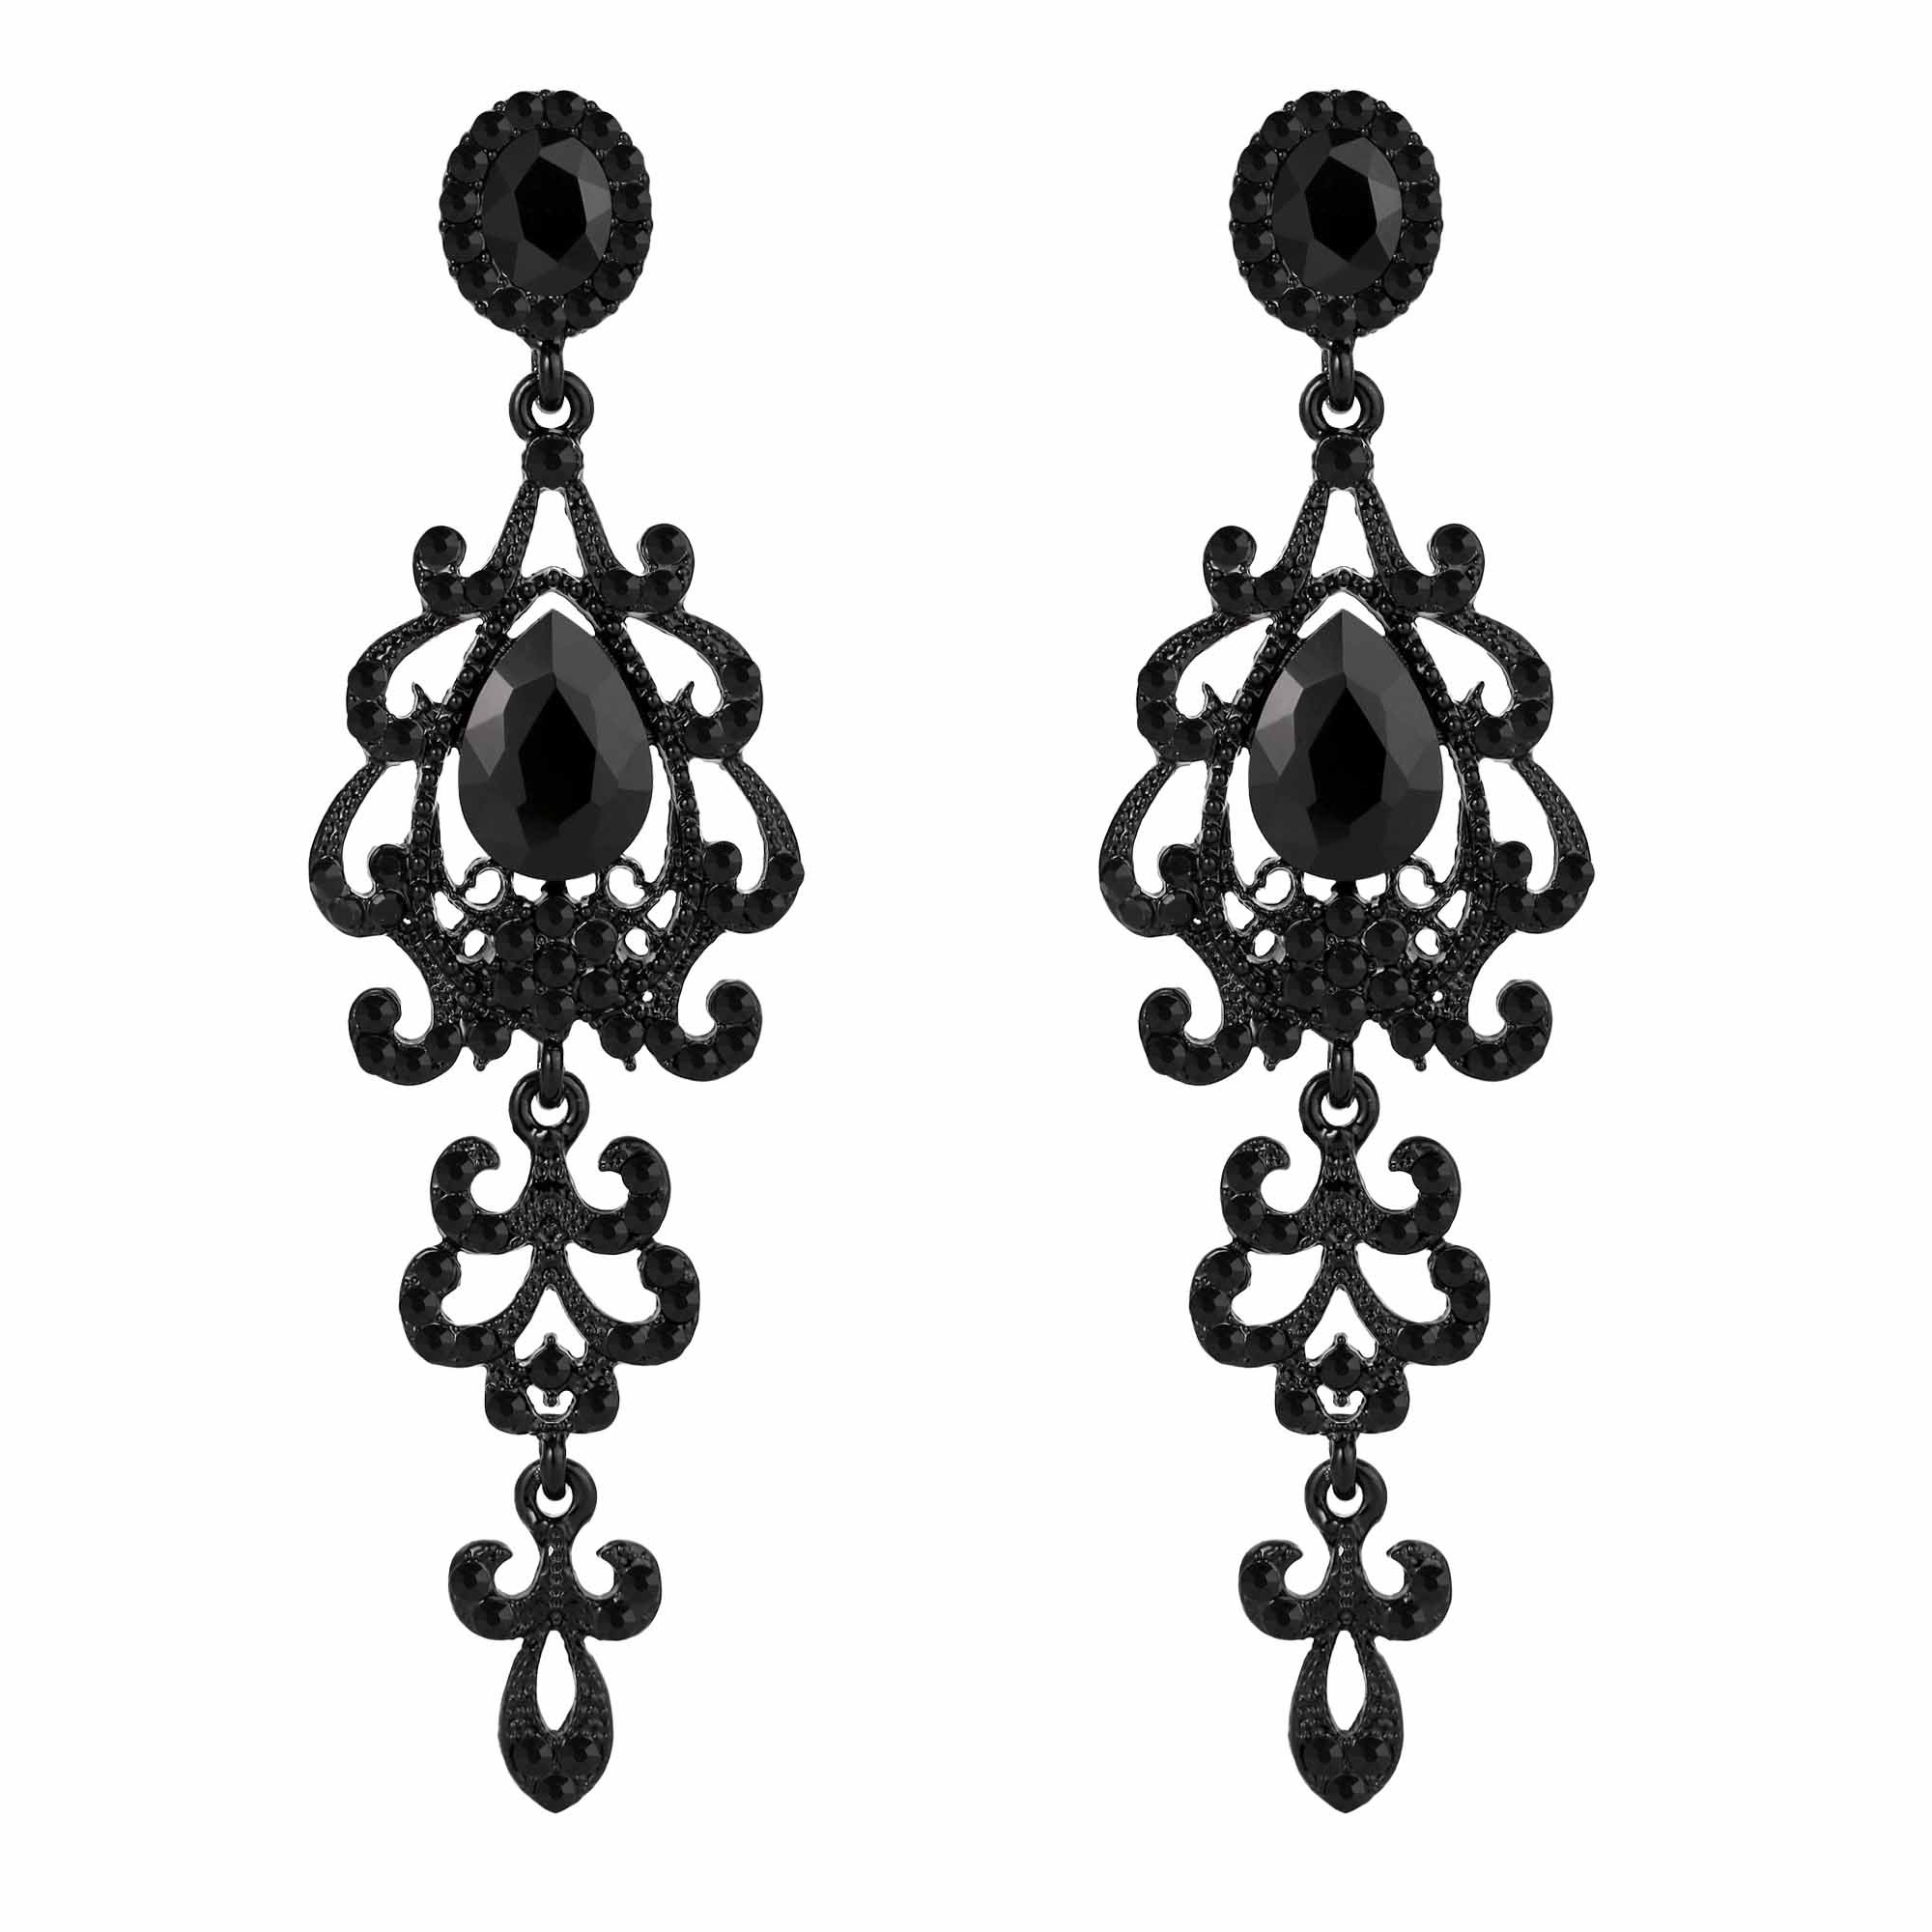 BriLove Women's Wedding Bridal Dangle Earrings with Victorian Style Crystal Teardrop Chandelier Black Black-Silver-Tone